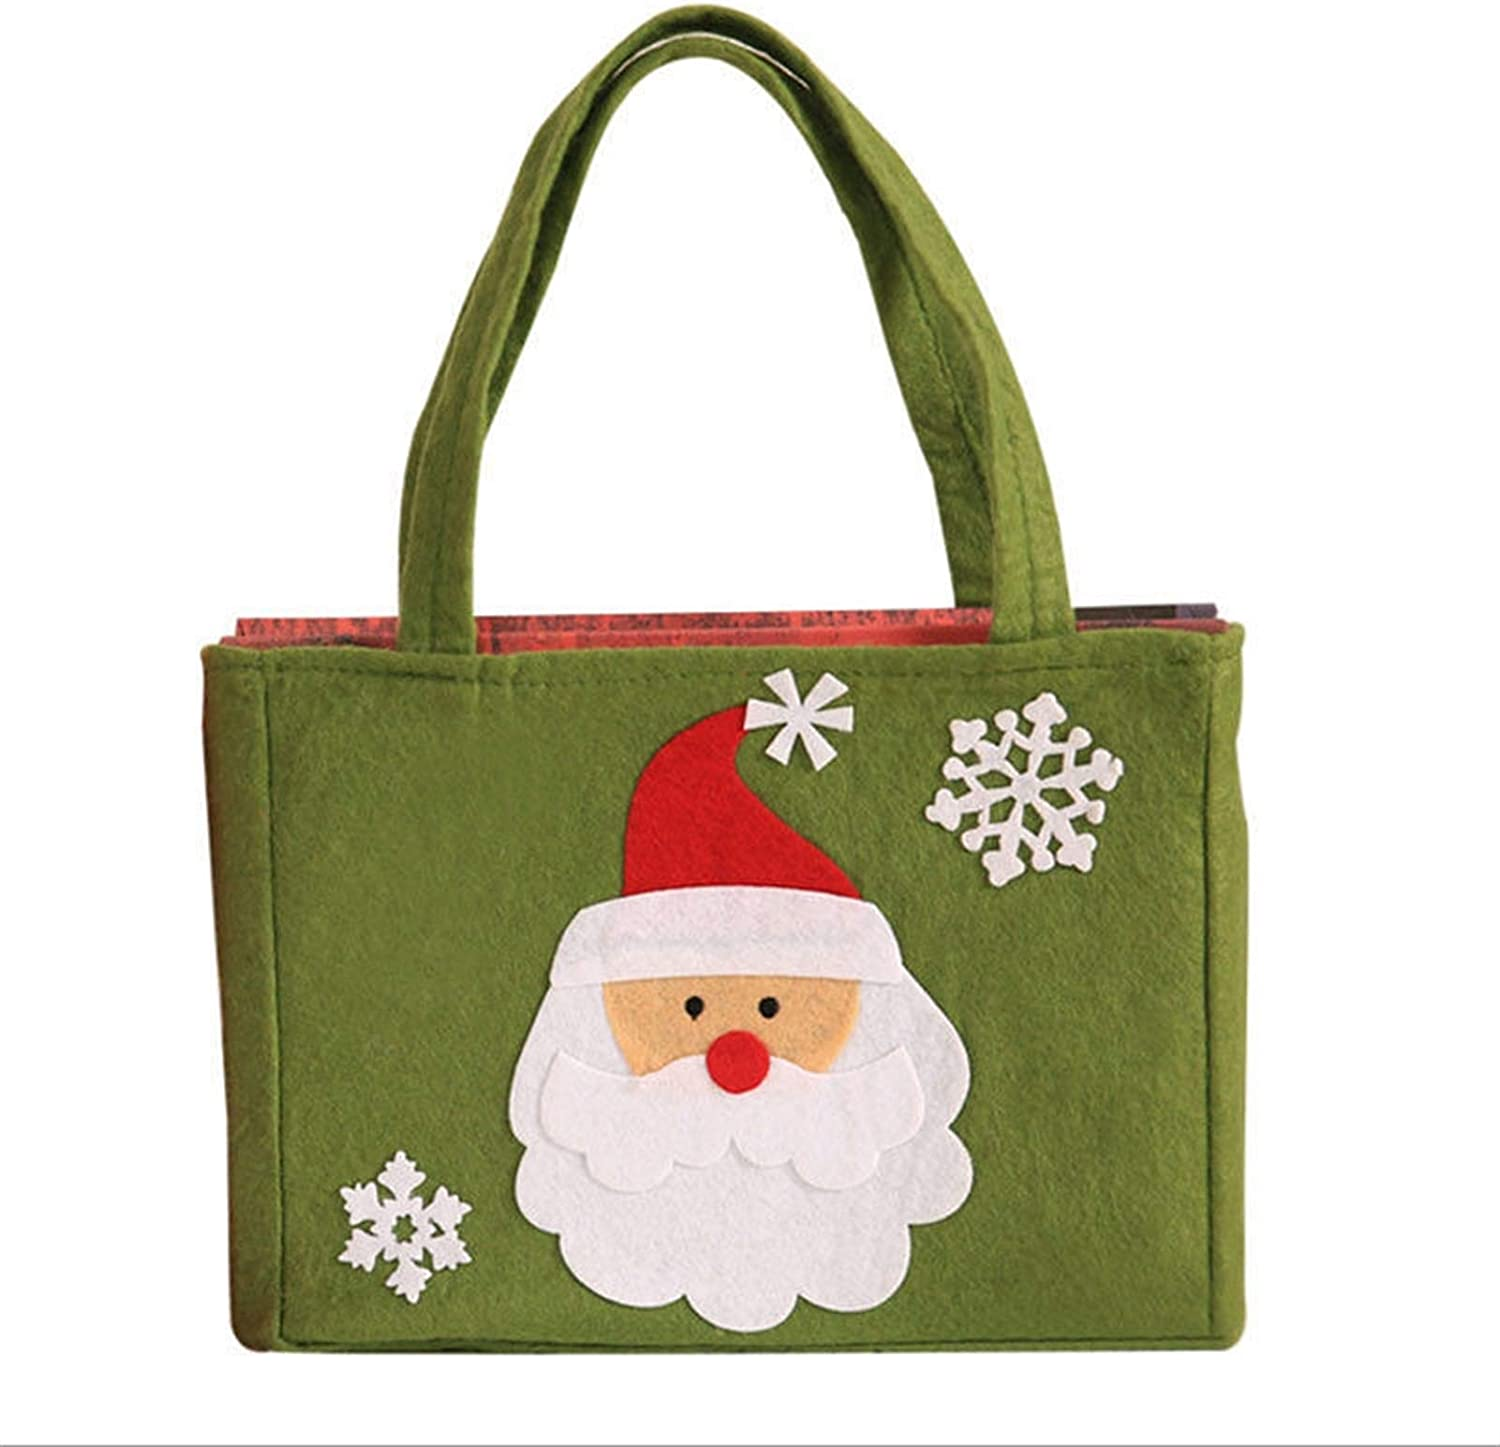 JZYZSNLB 5 ☆ popular Bag Cute Santa Recommended Claus Snowman Cookie Gift Pac Bags Candy